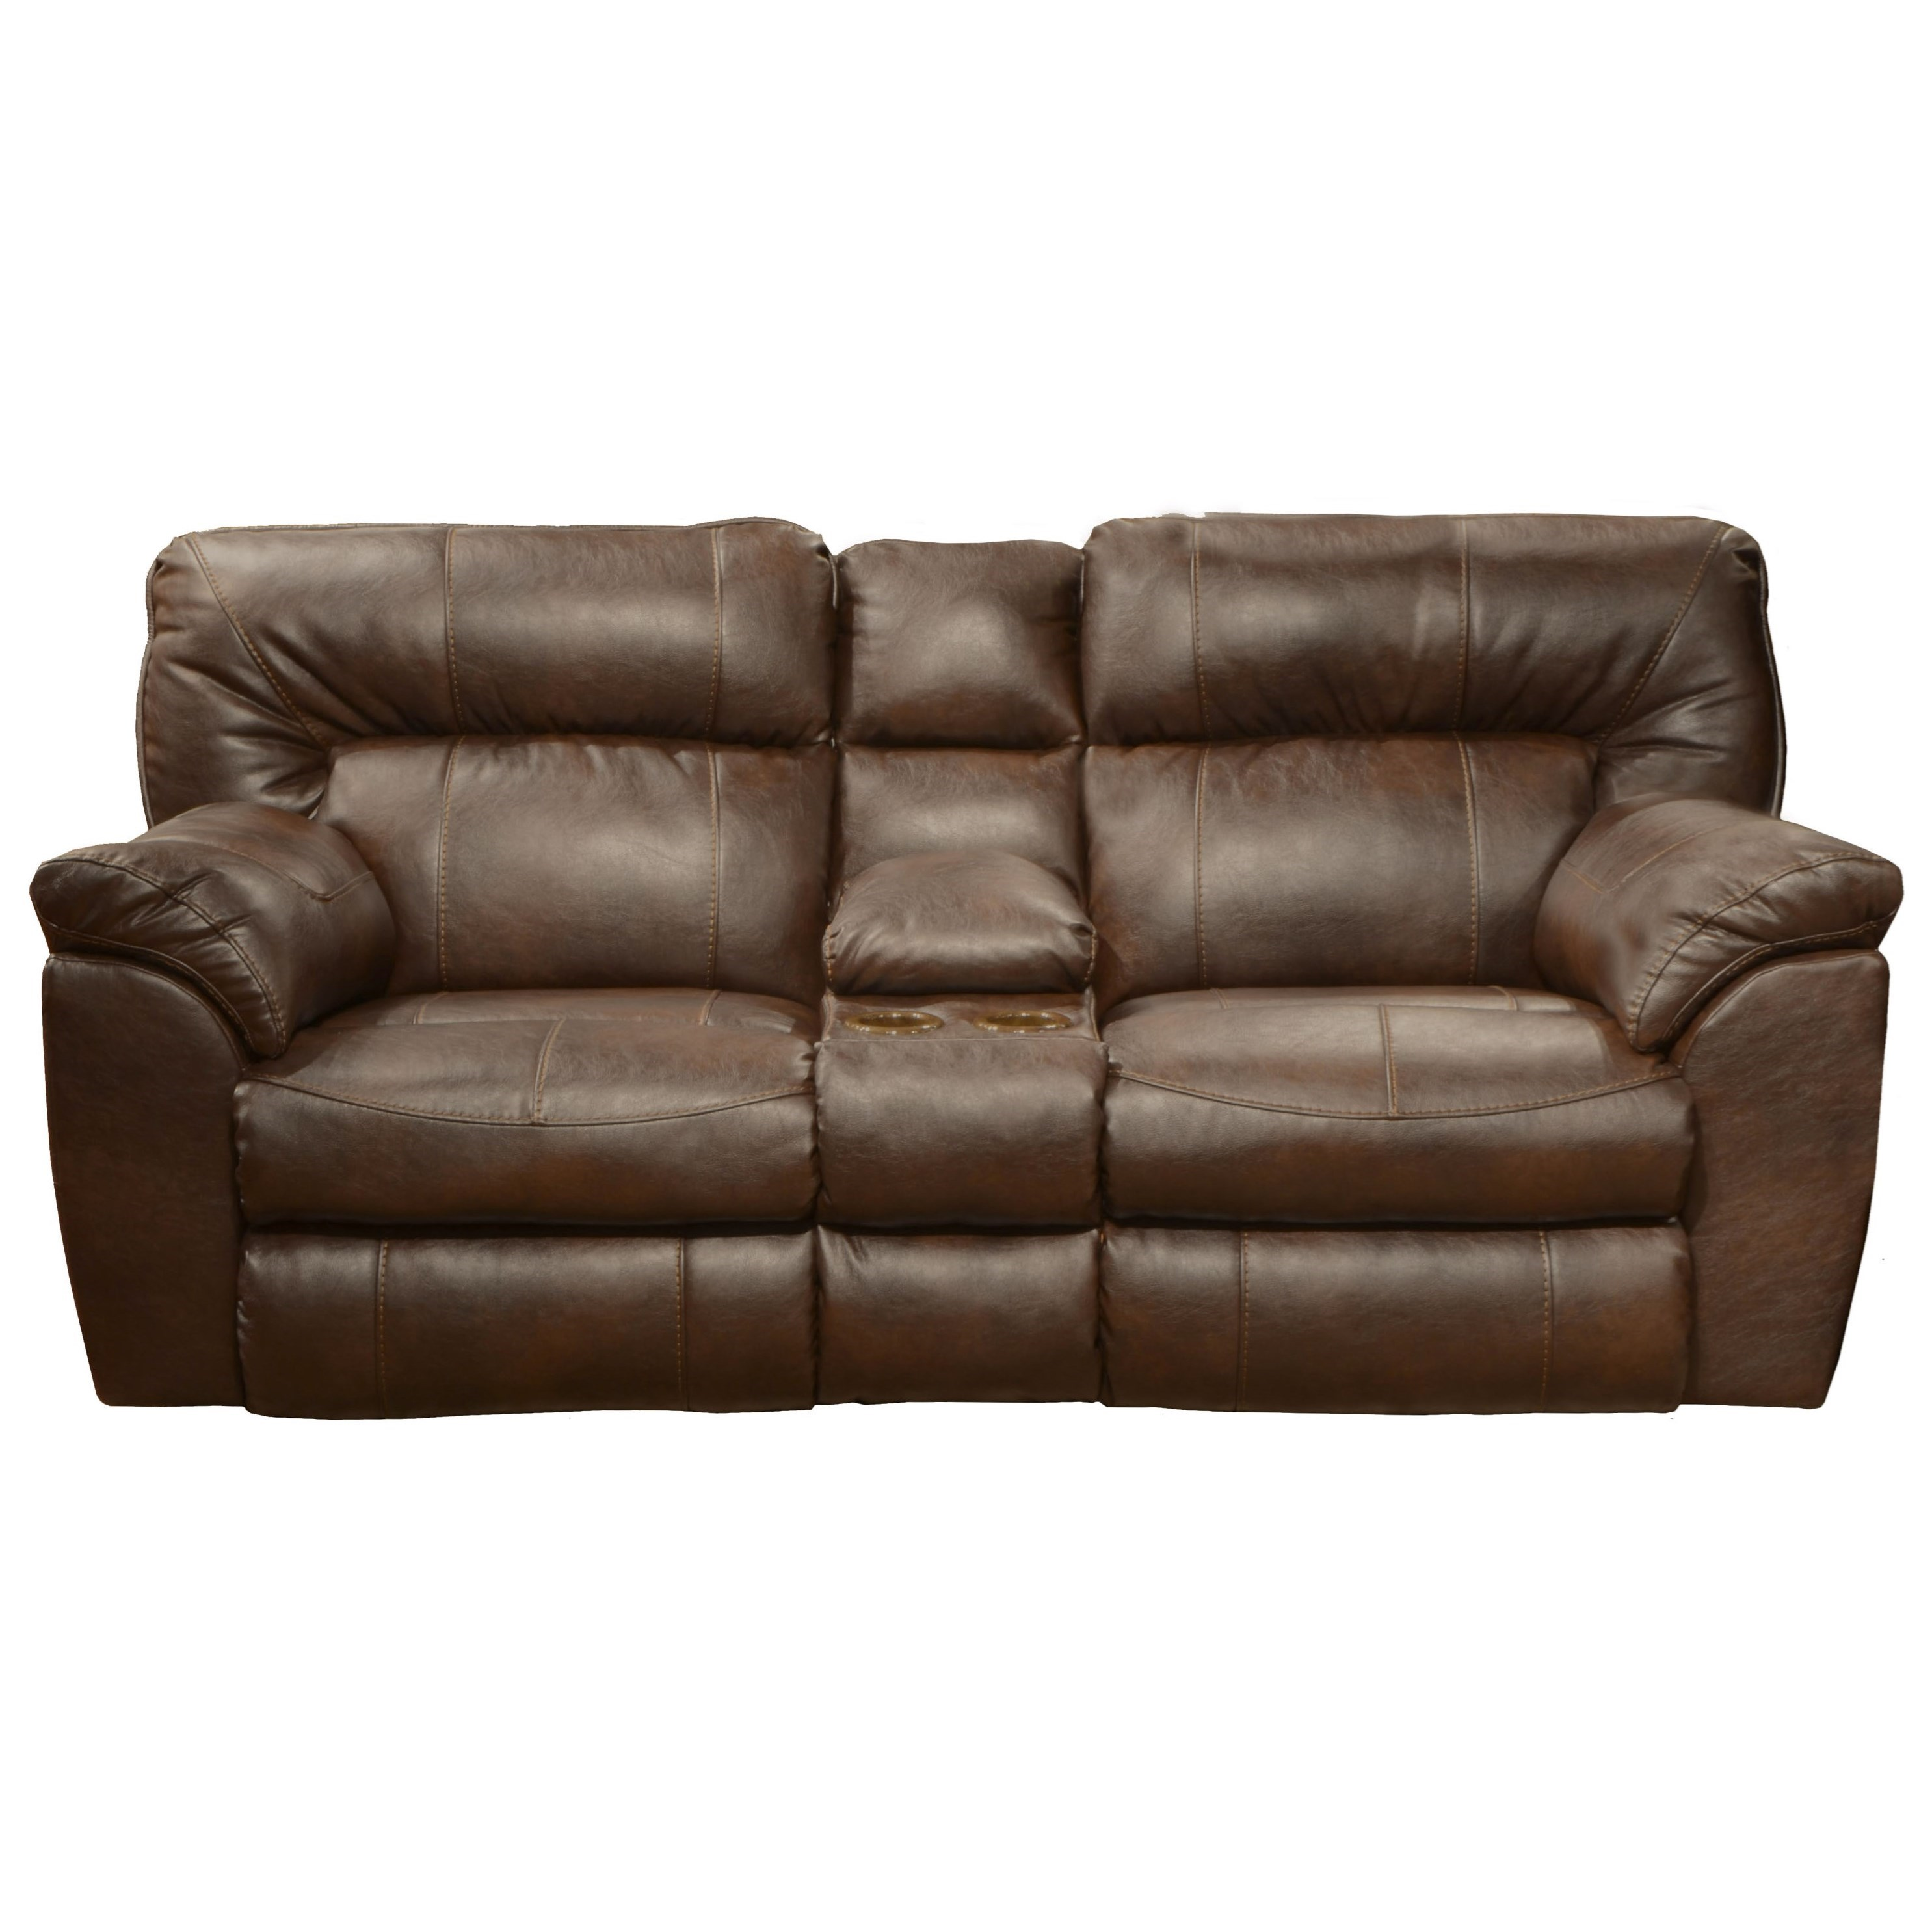 nolan power reclining sofa small mid century modern sectional catnapper extra wide console